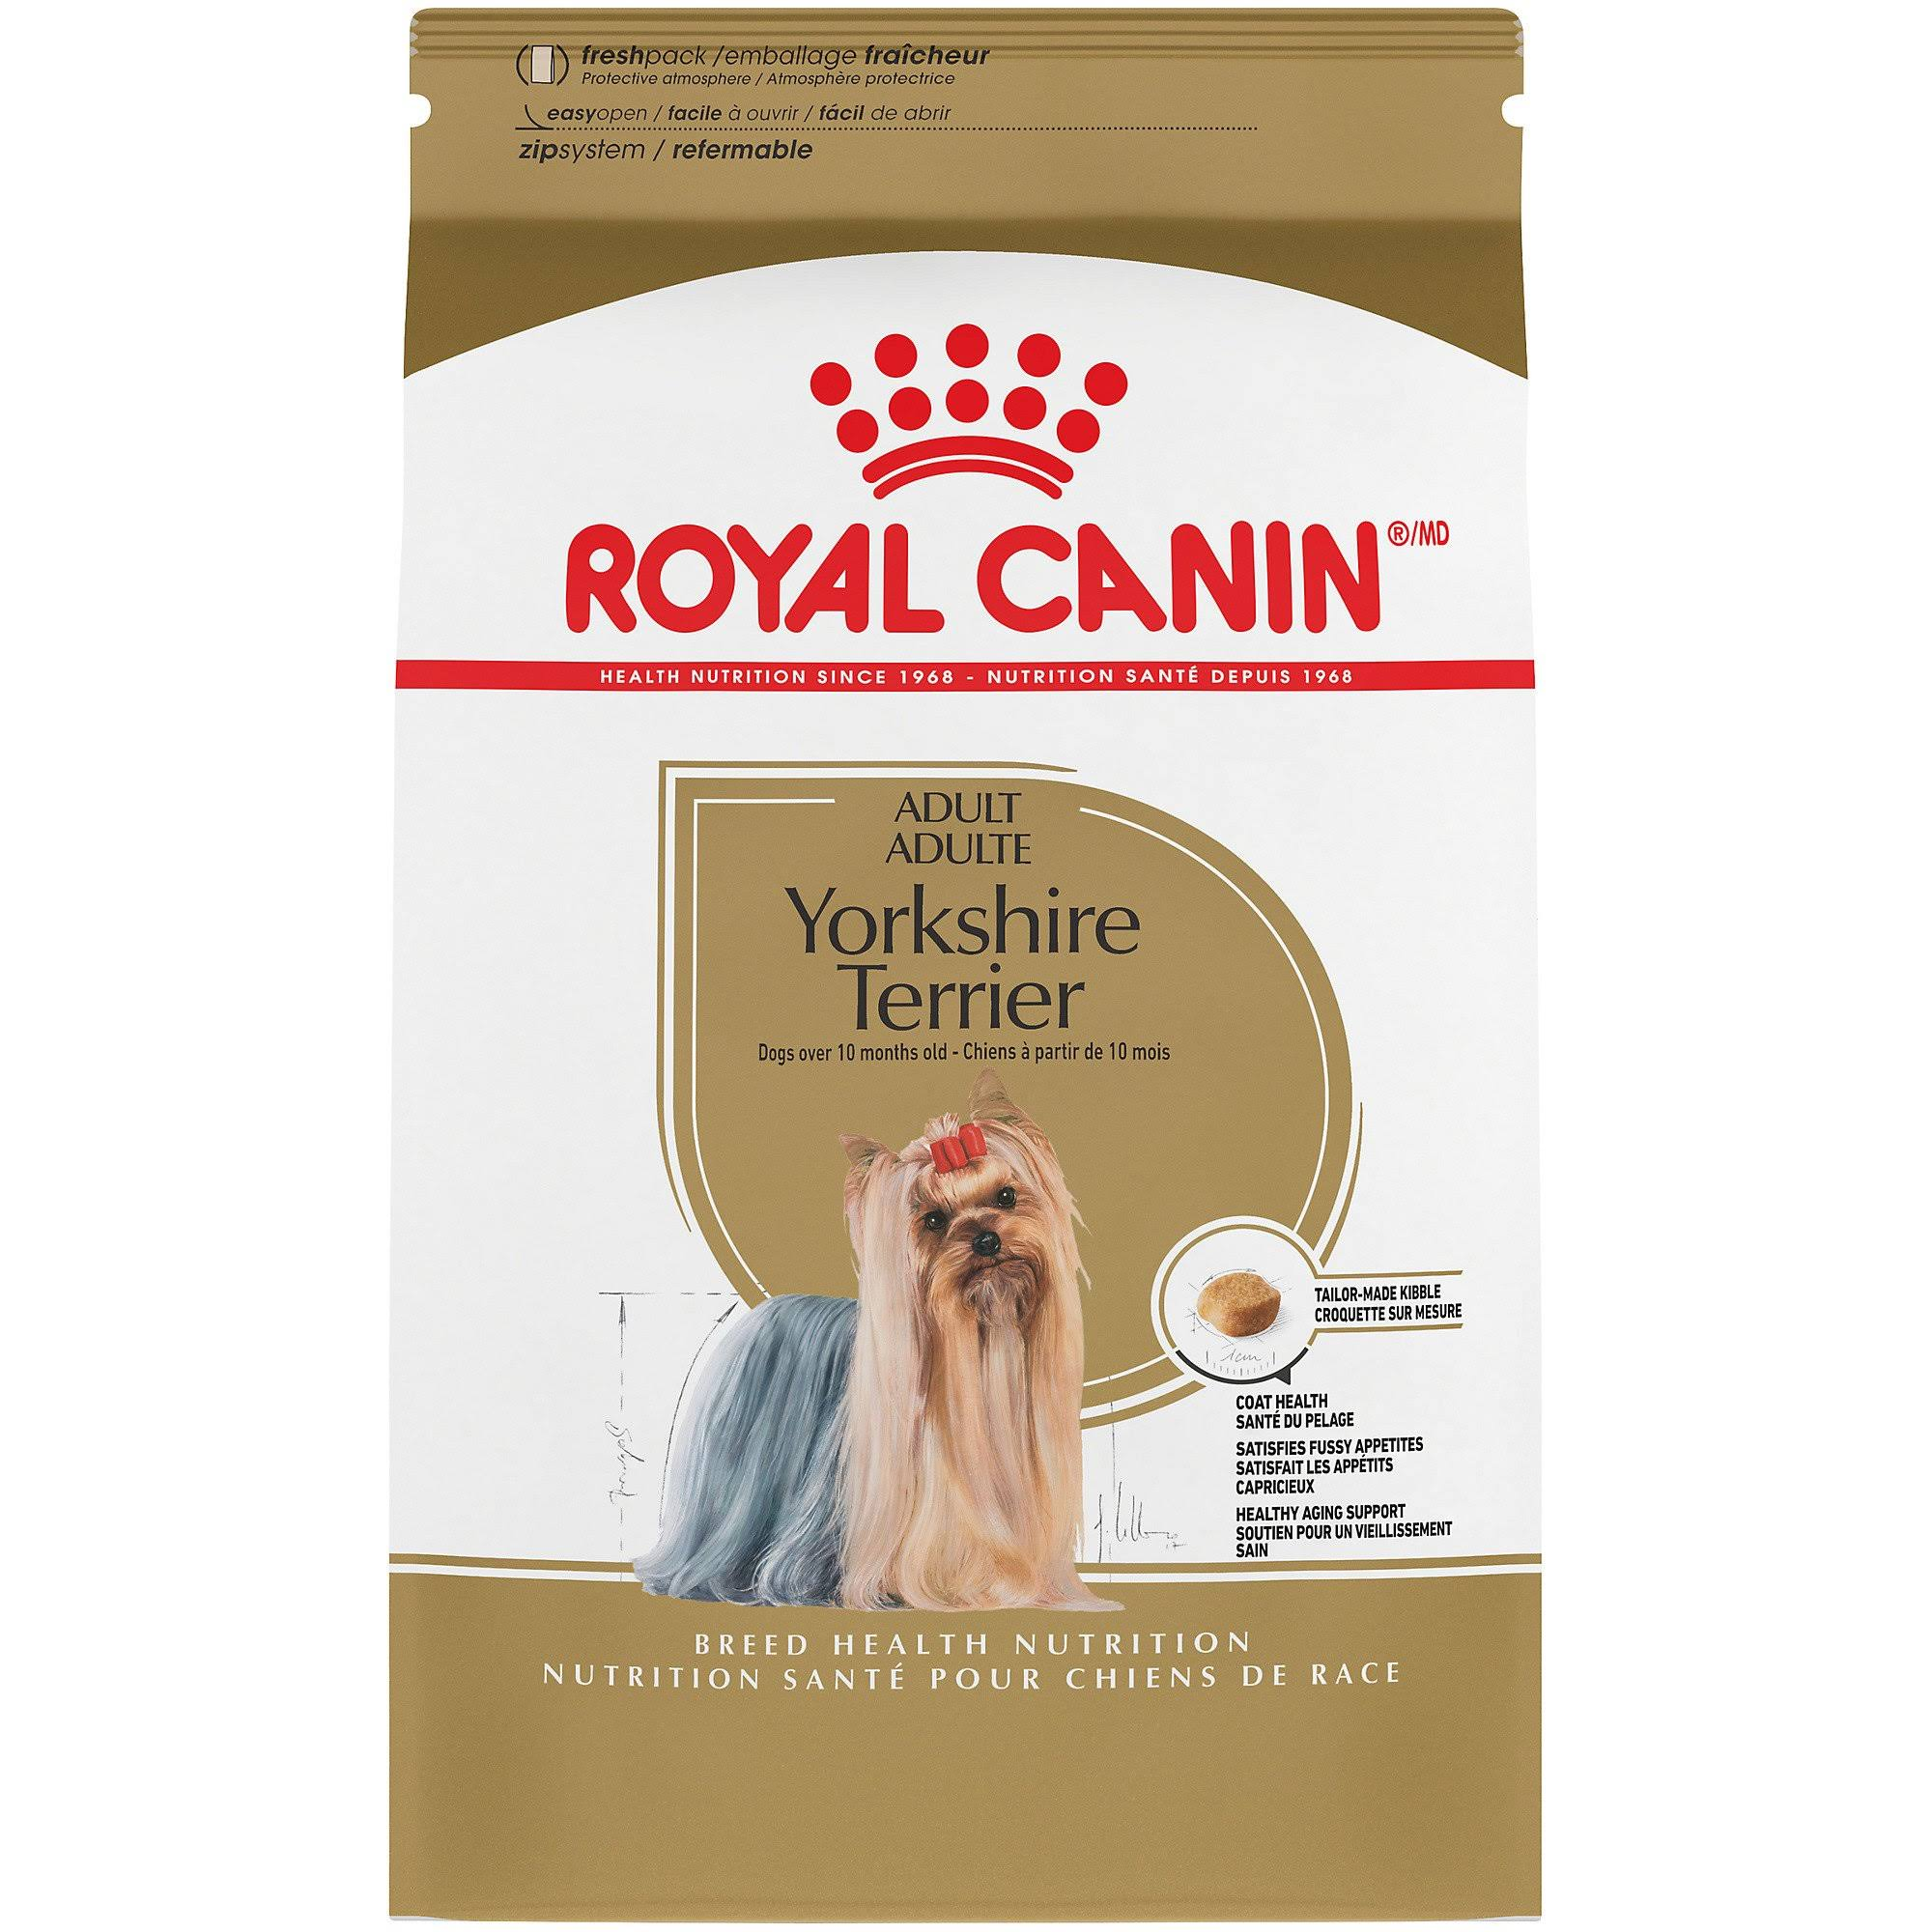 Royal Canin Dry Dog Food - Yorkshire Terrier, 10lbs